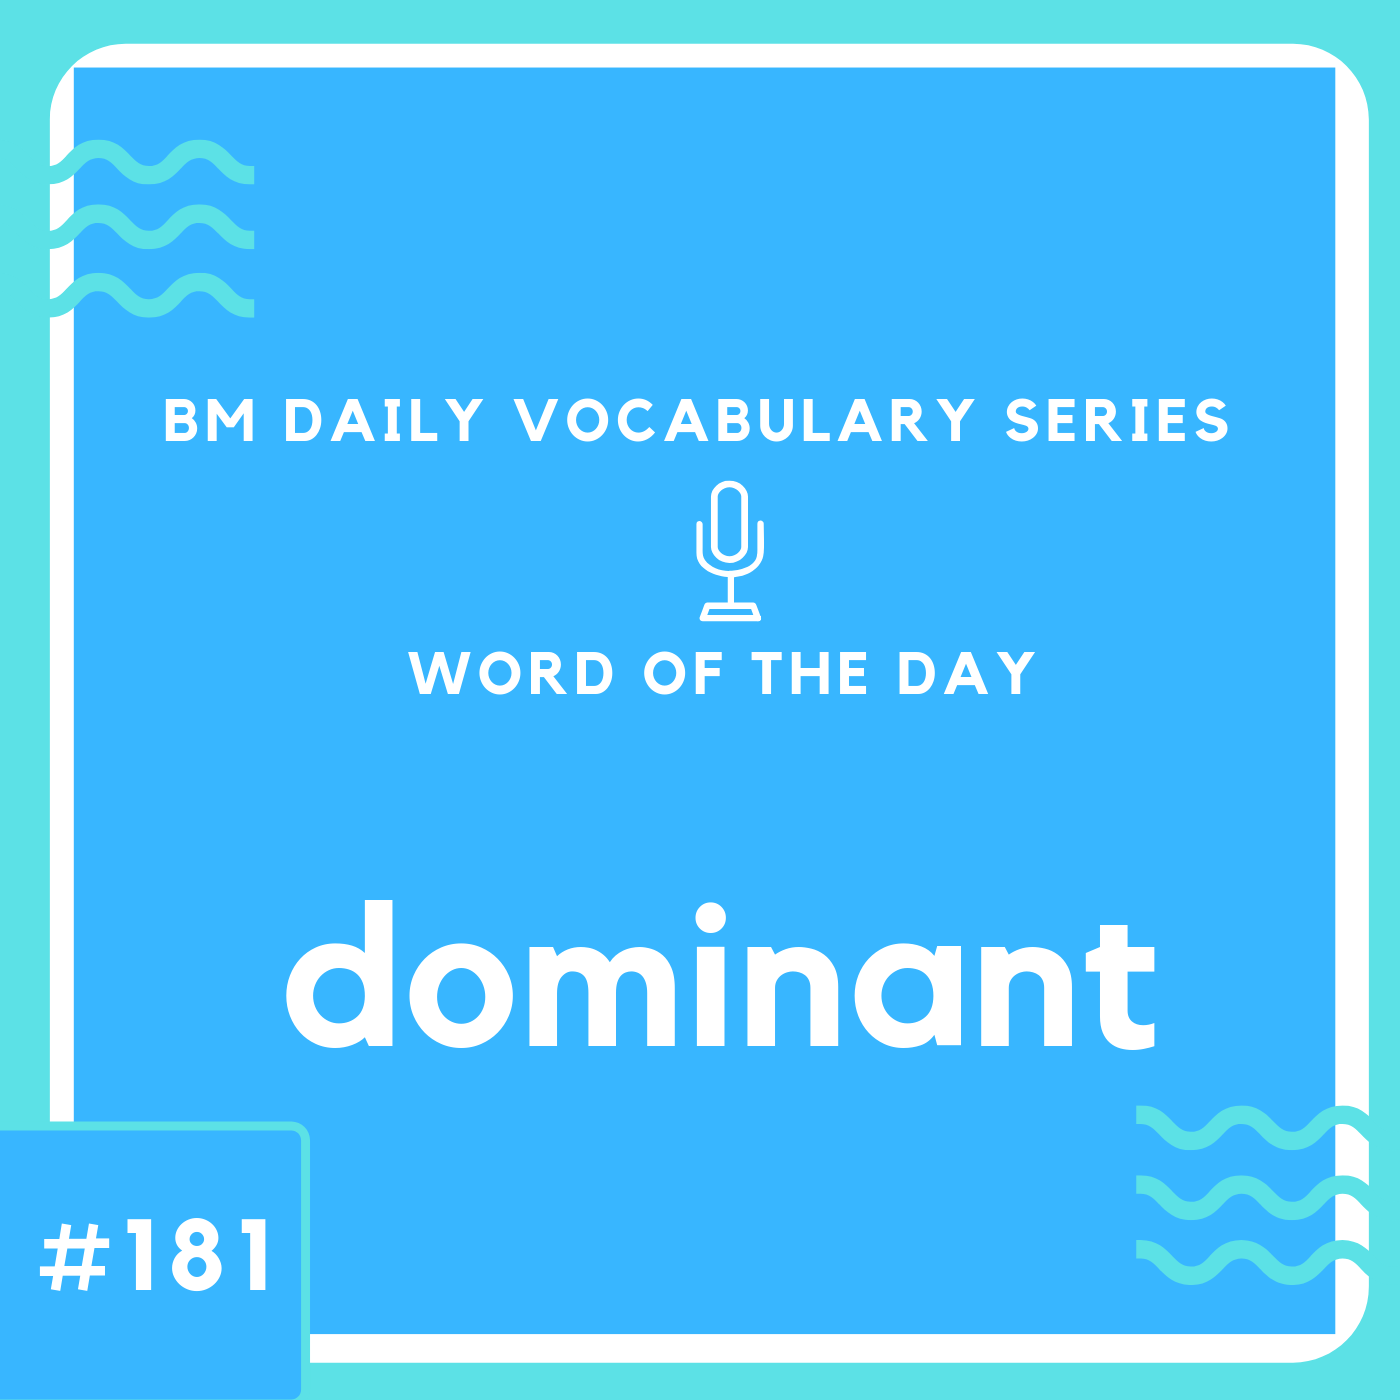 200 BM Daily Vocabulary #181 | dominant